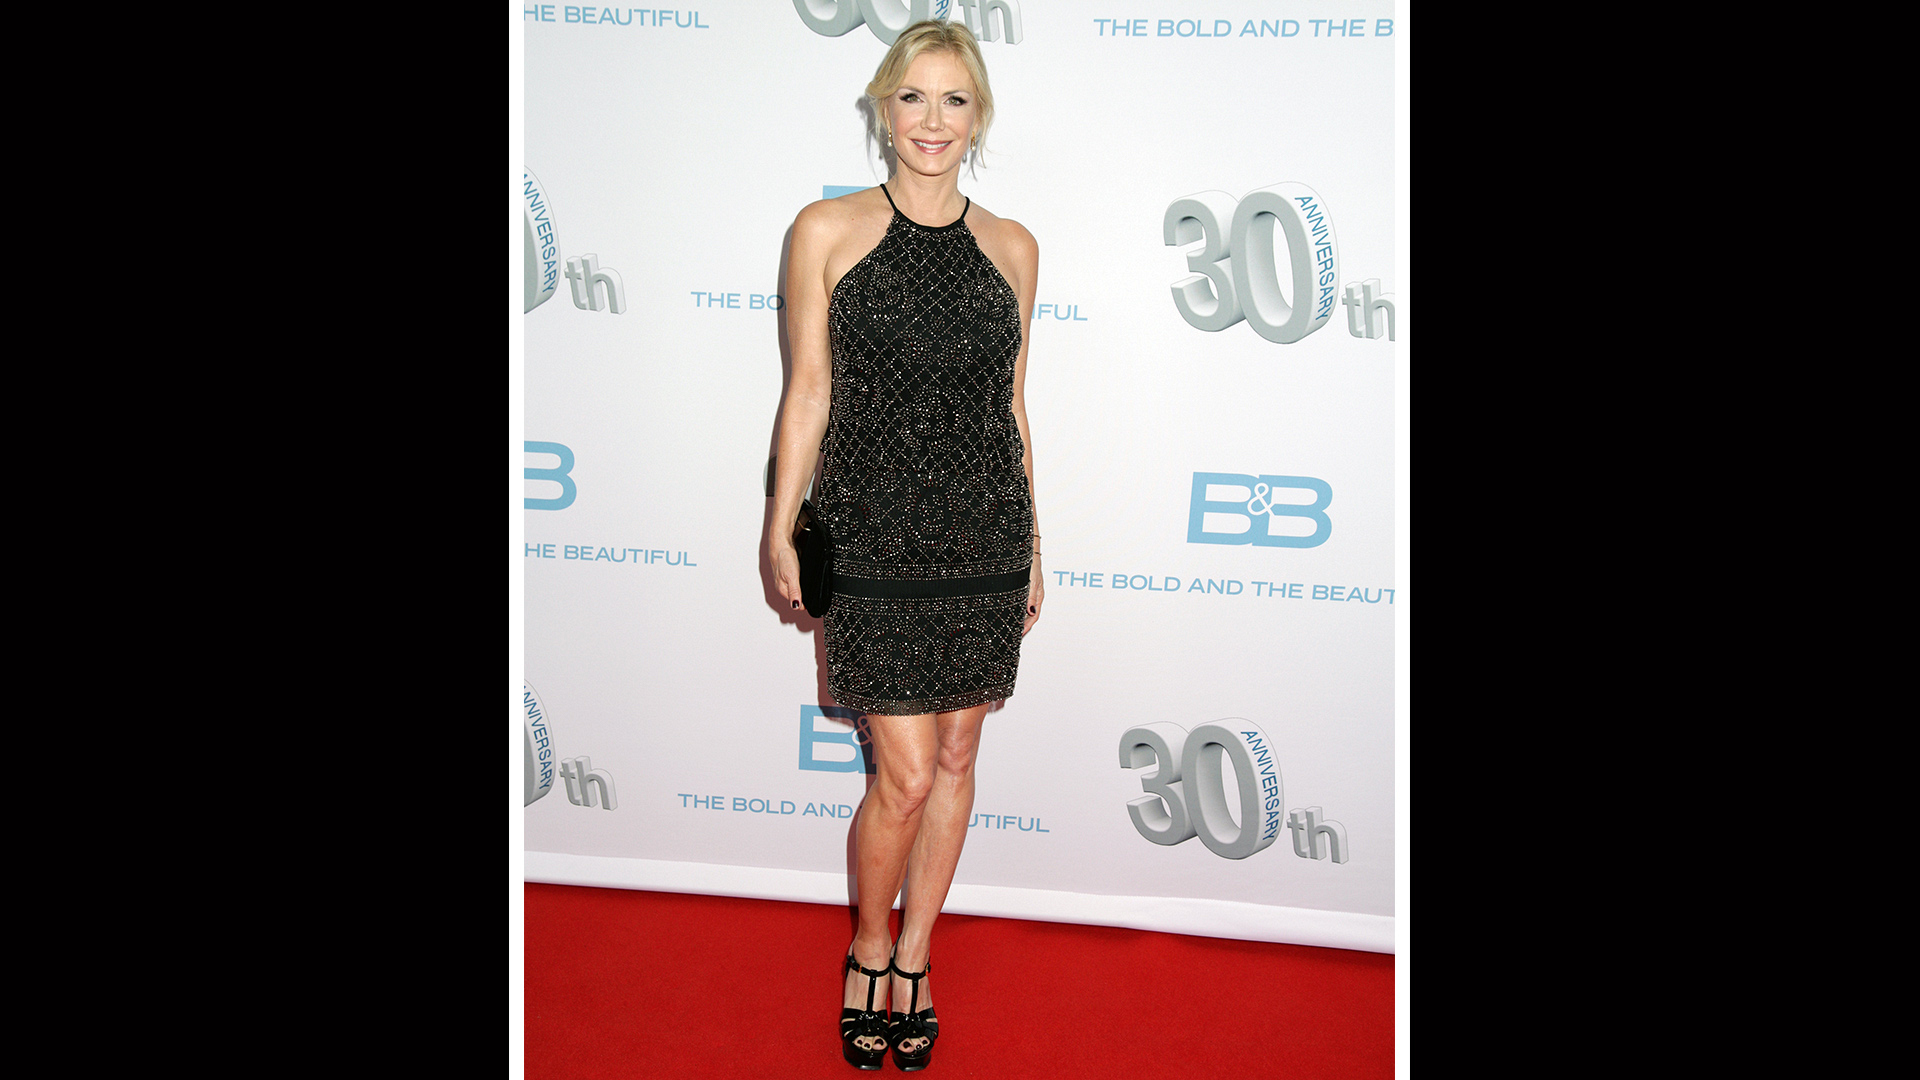 Katherine Kelly Lang is radiant in a sparkly black cocktail dress.